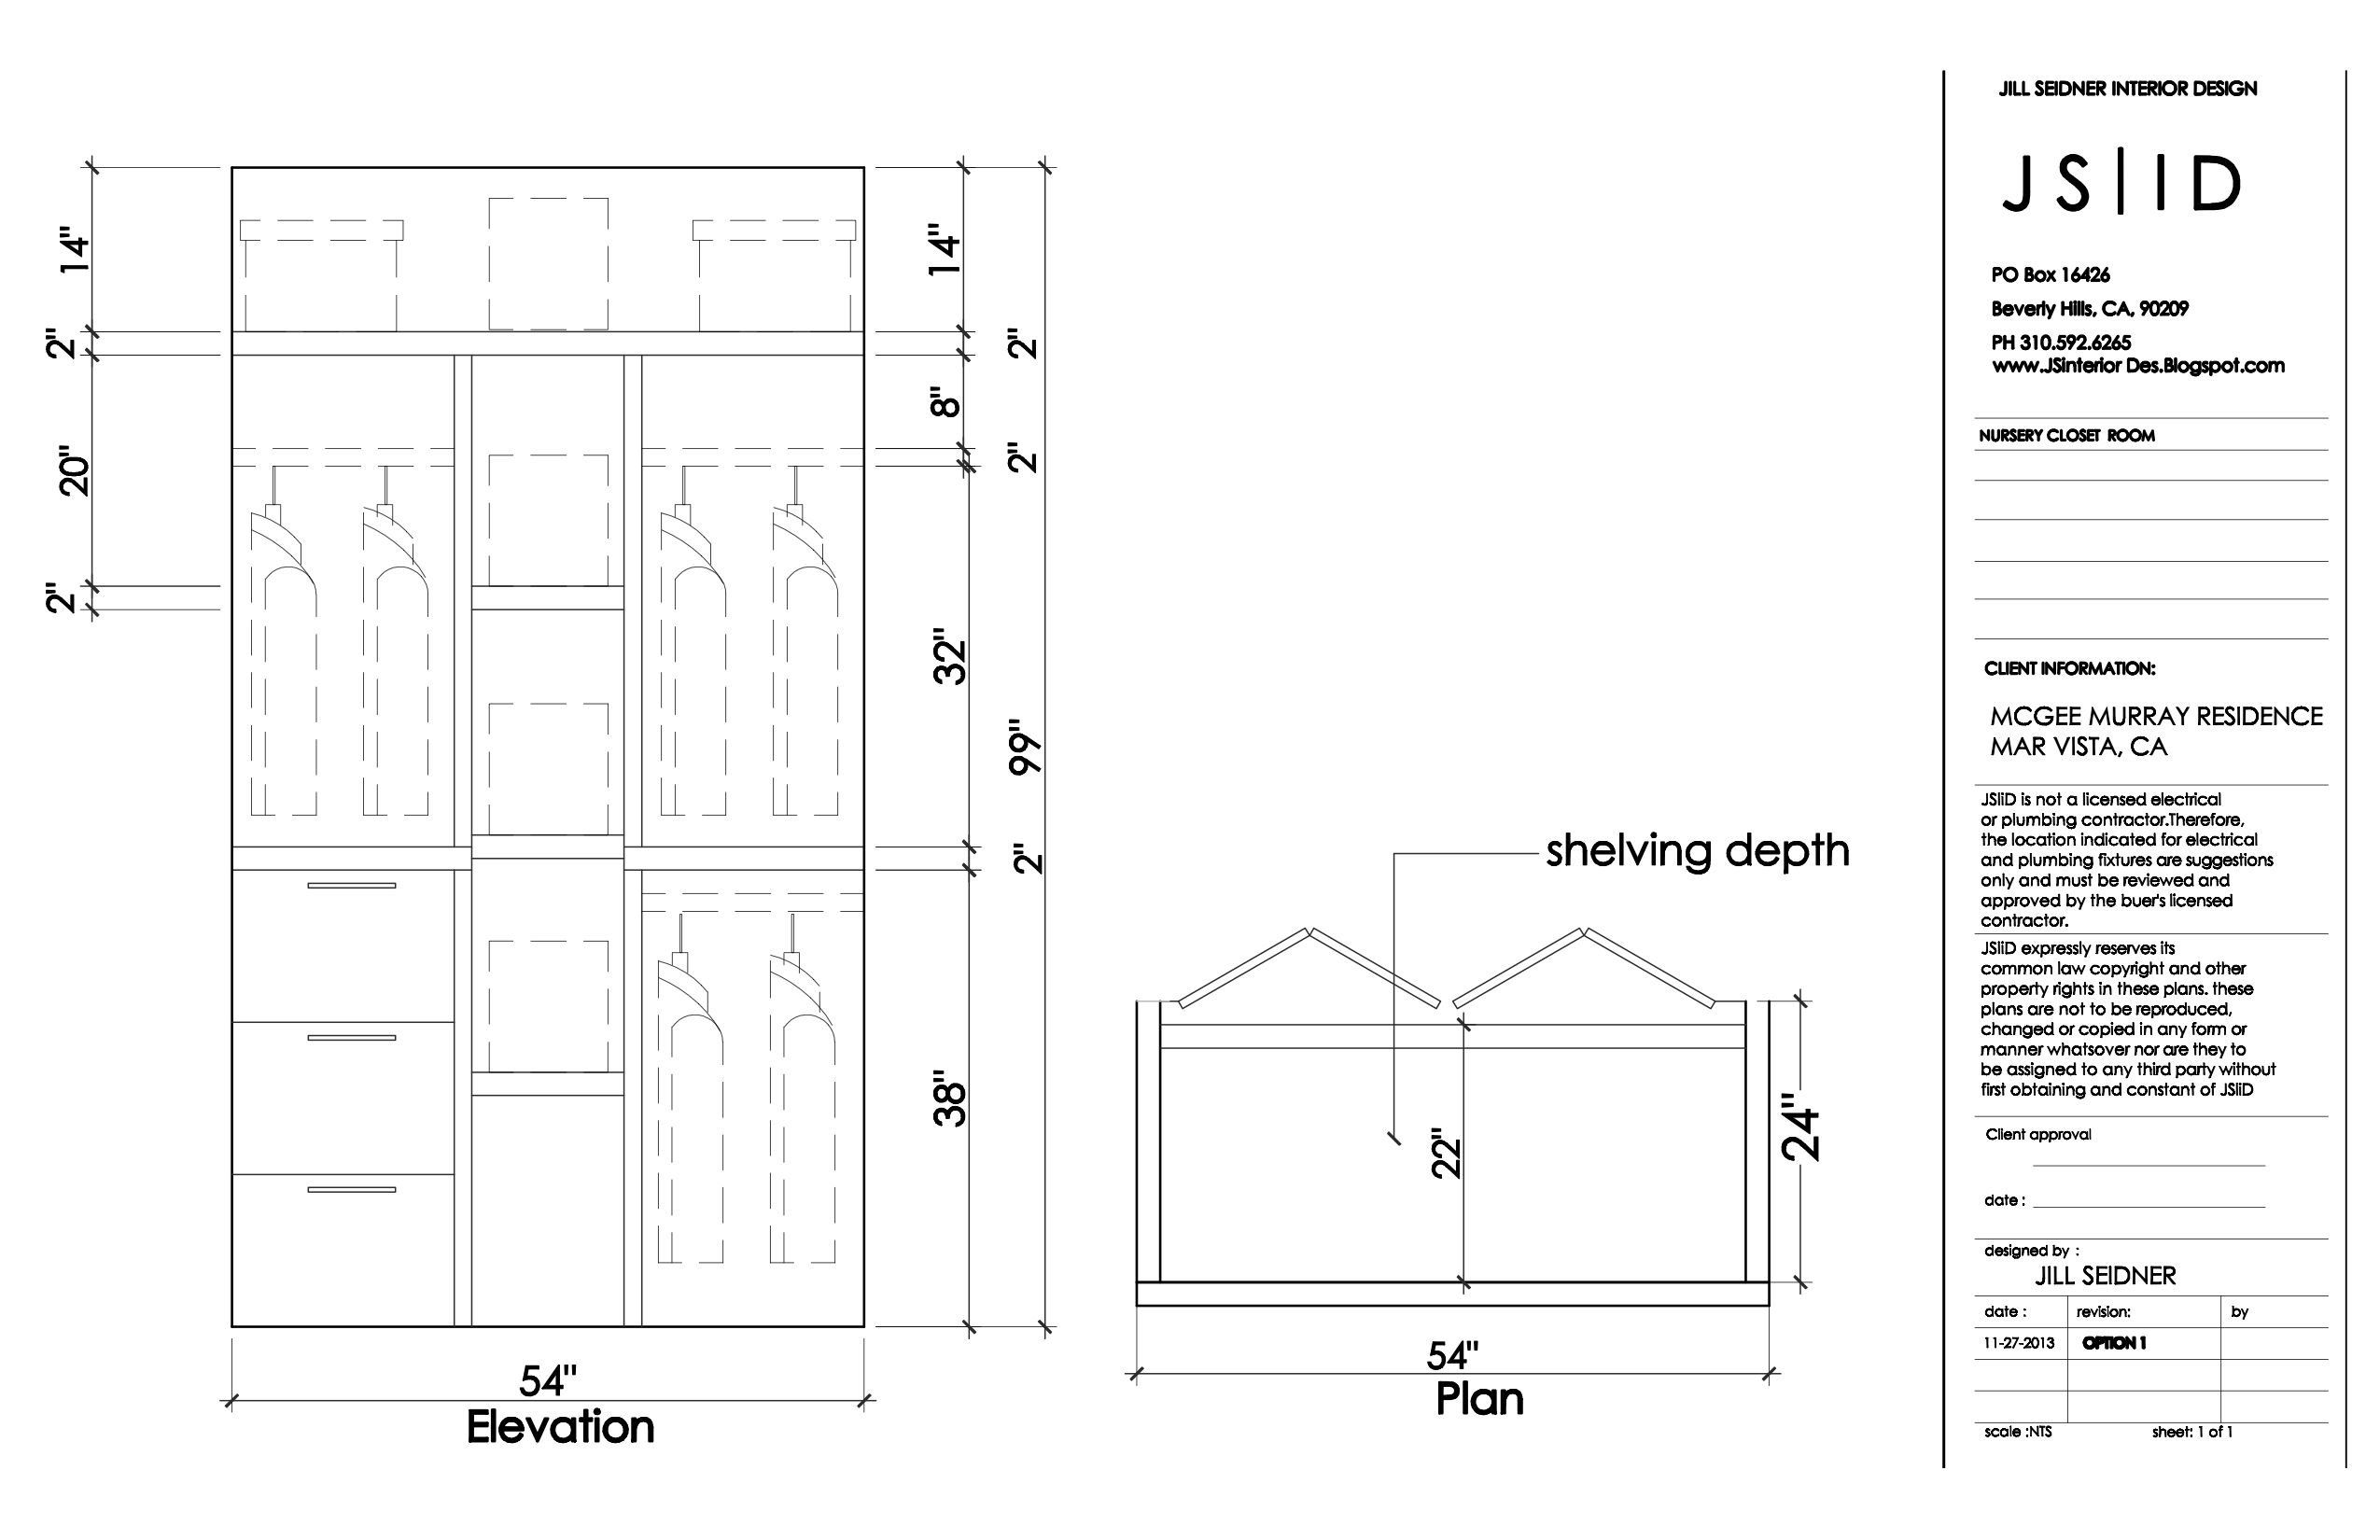 West La Ca Residence Nursery Closet Plan Elevation Drawing Option 1 Www